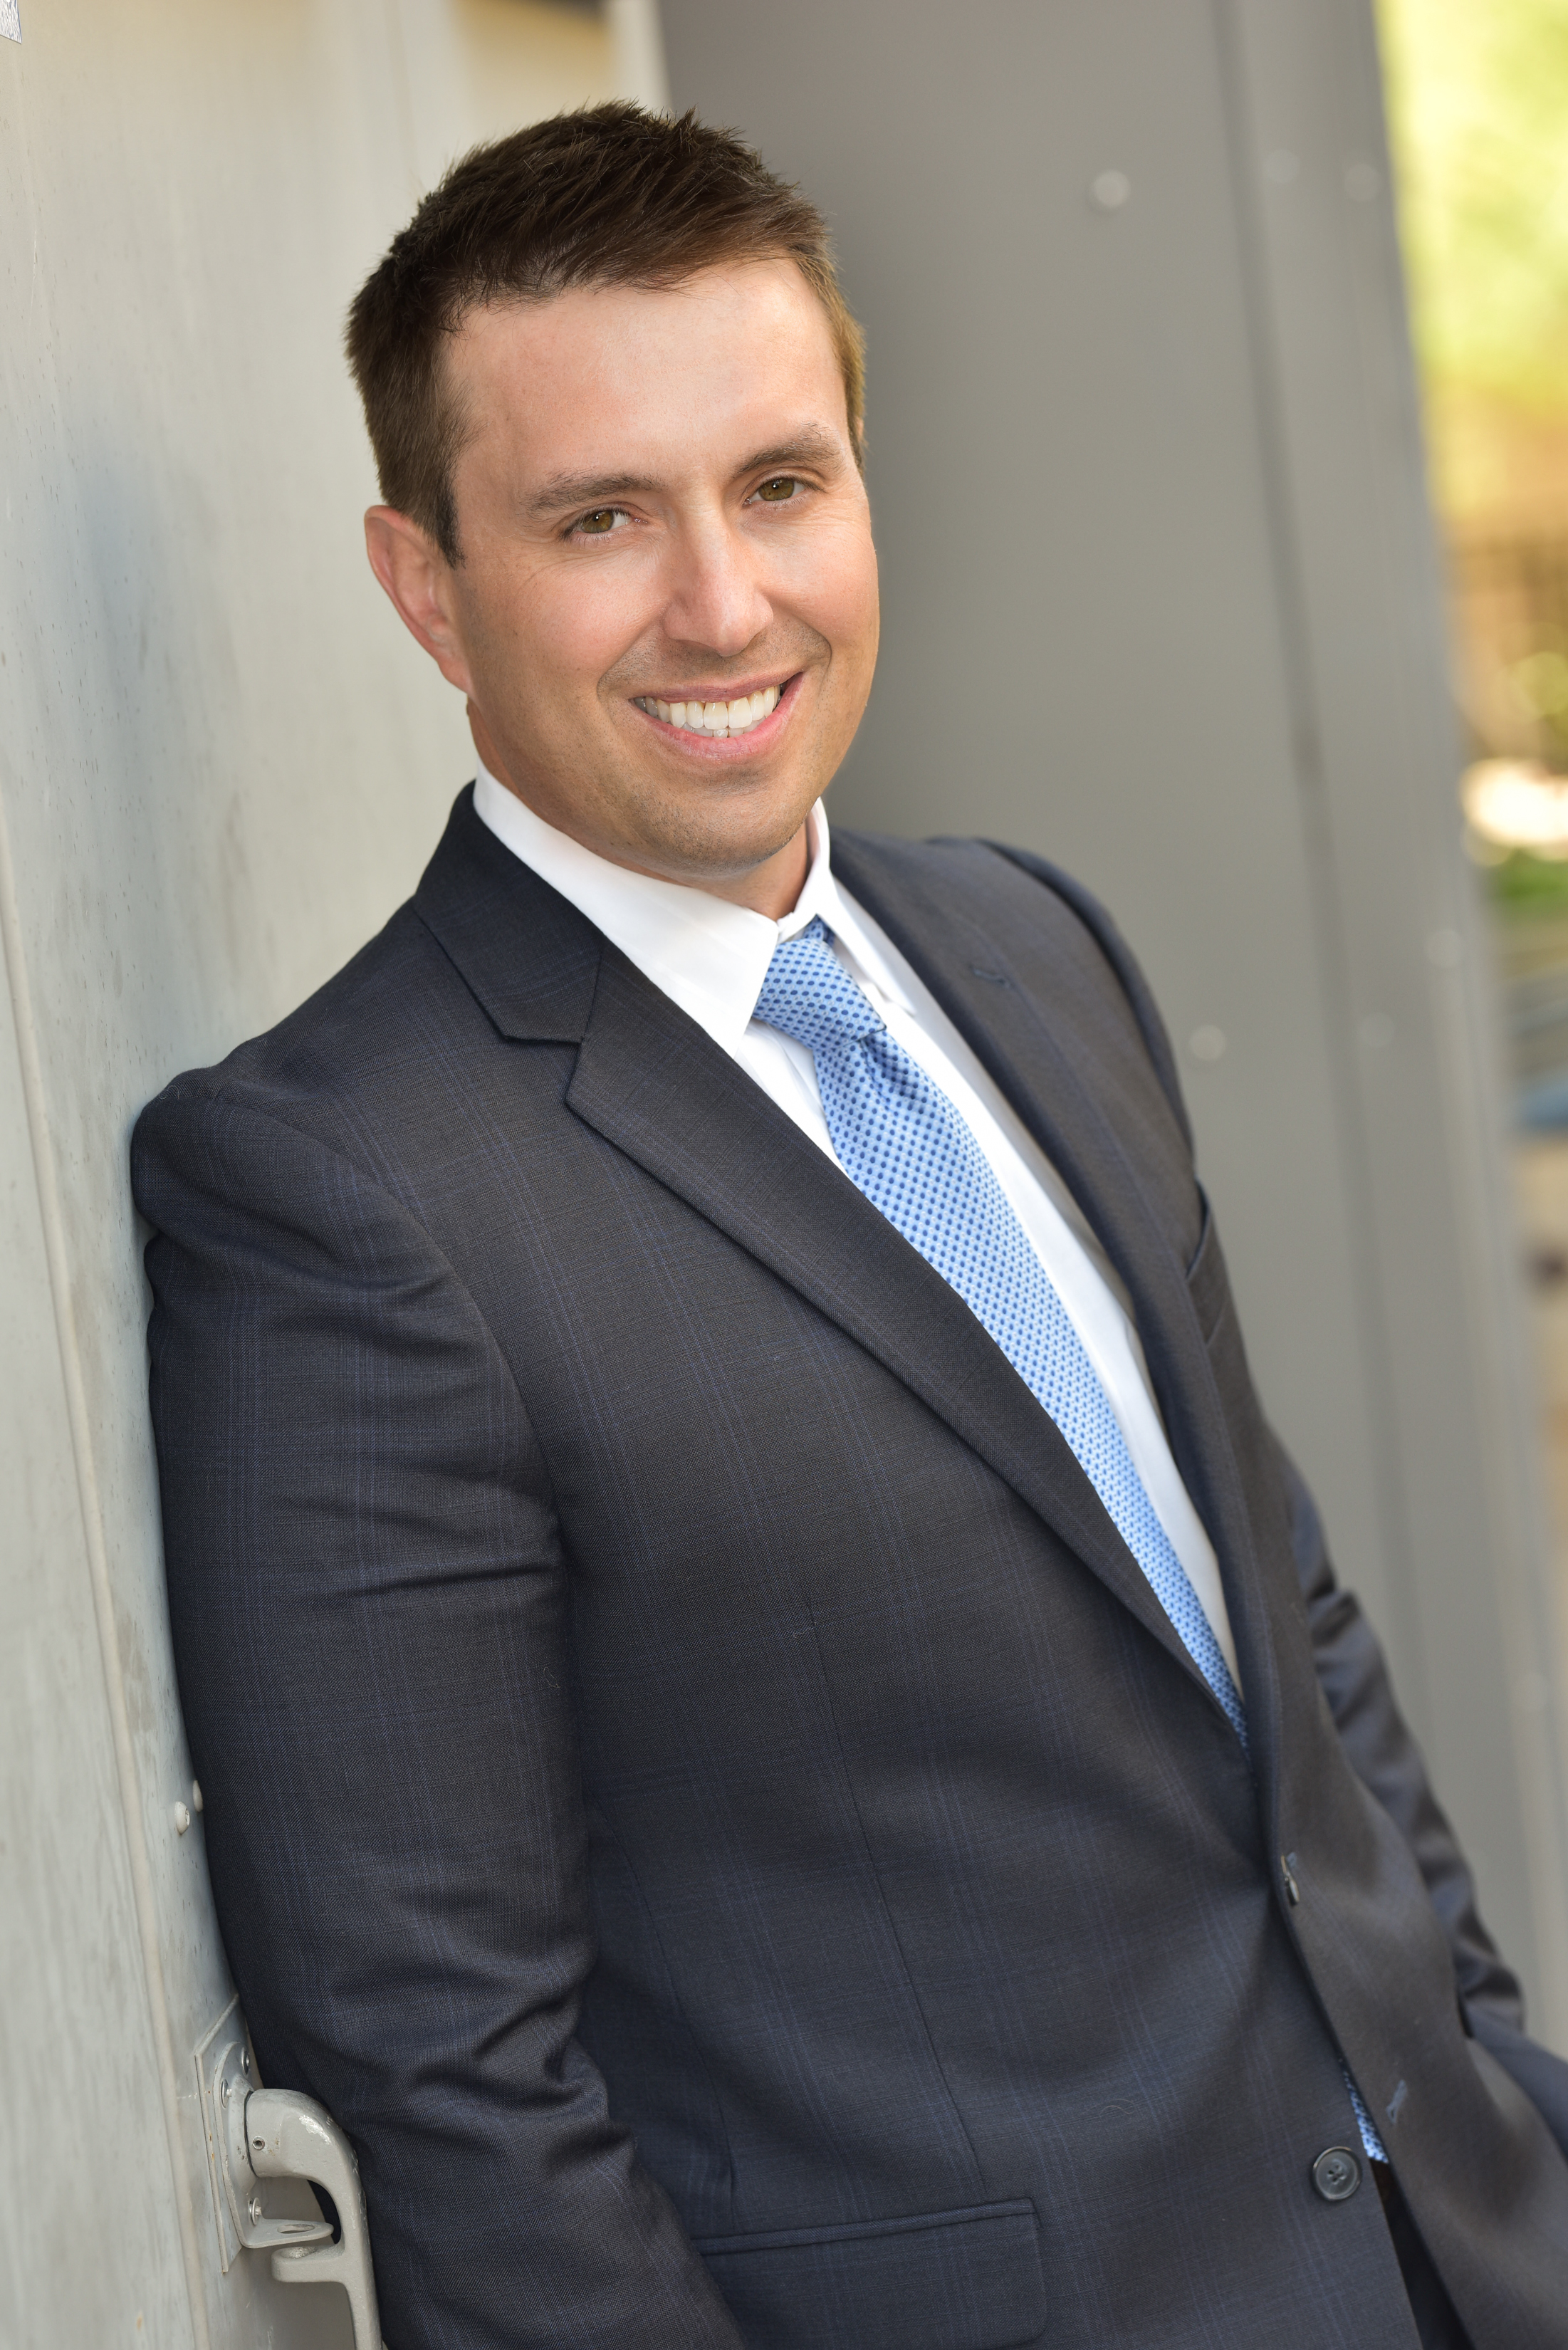 Nicholas Monardo is Vice President of Wholesale Lending at CNN Mortgage in Scottsdale, Ariz., and President of the Arizona Mortgage Lenders Association (AMLA)